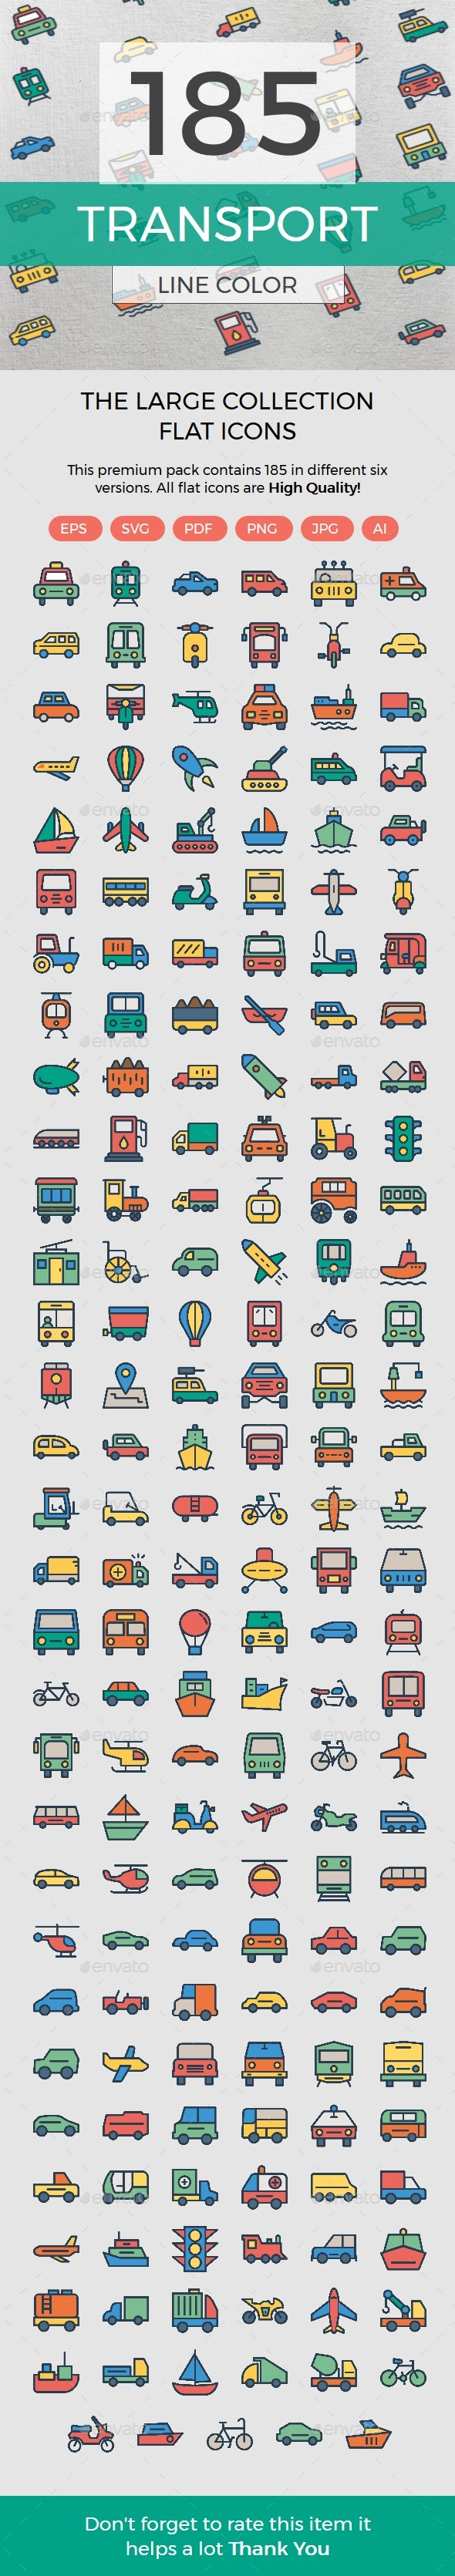 Transport Line Color Icons - Web Icons